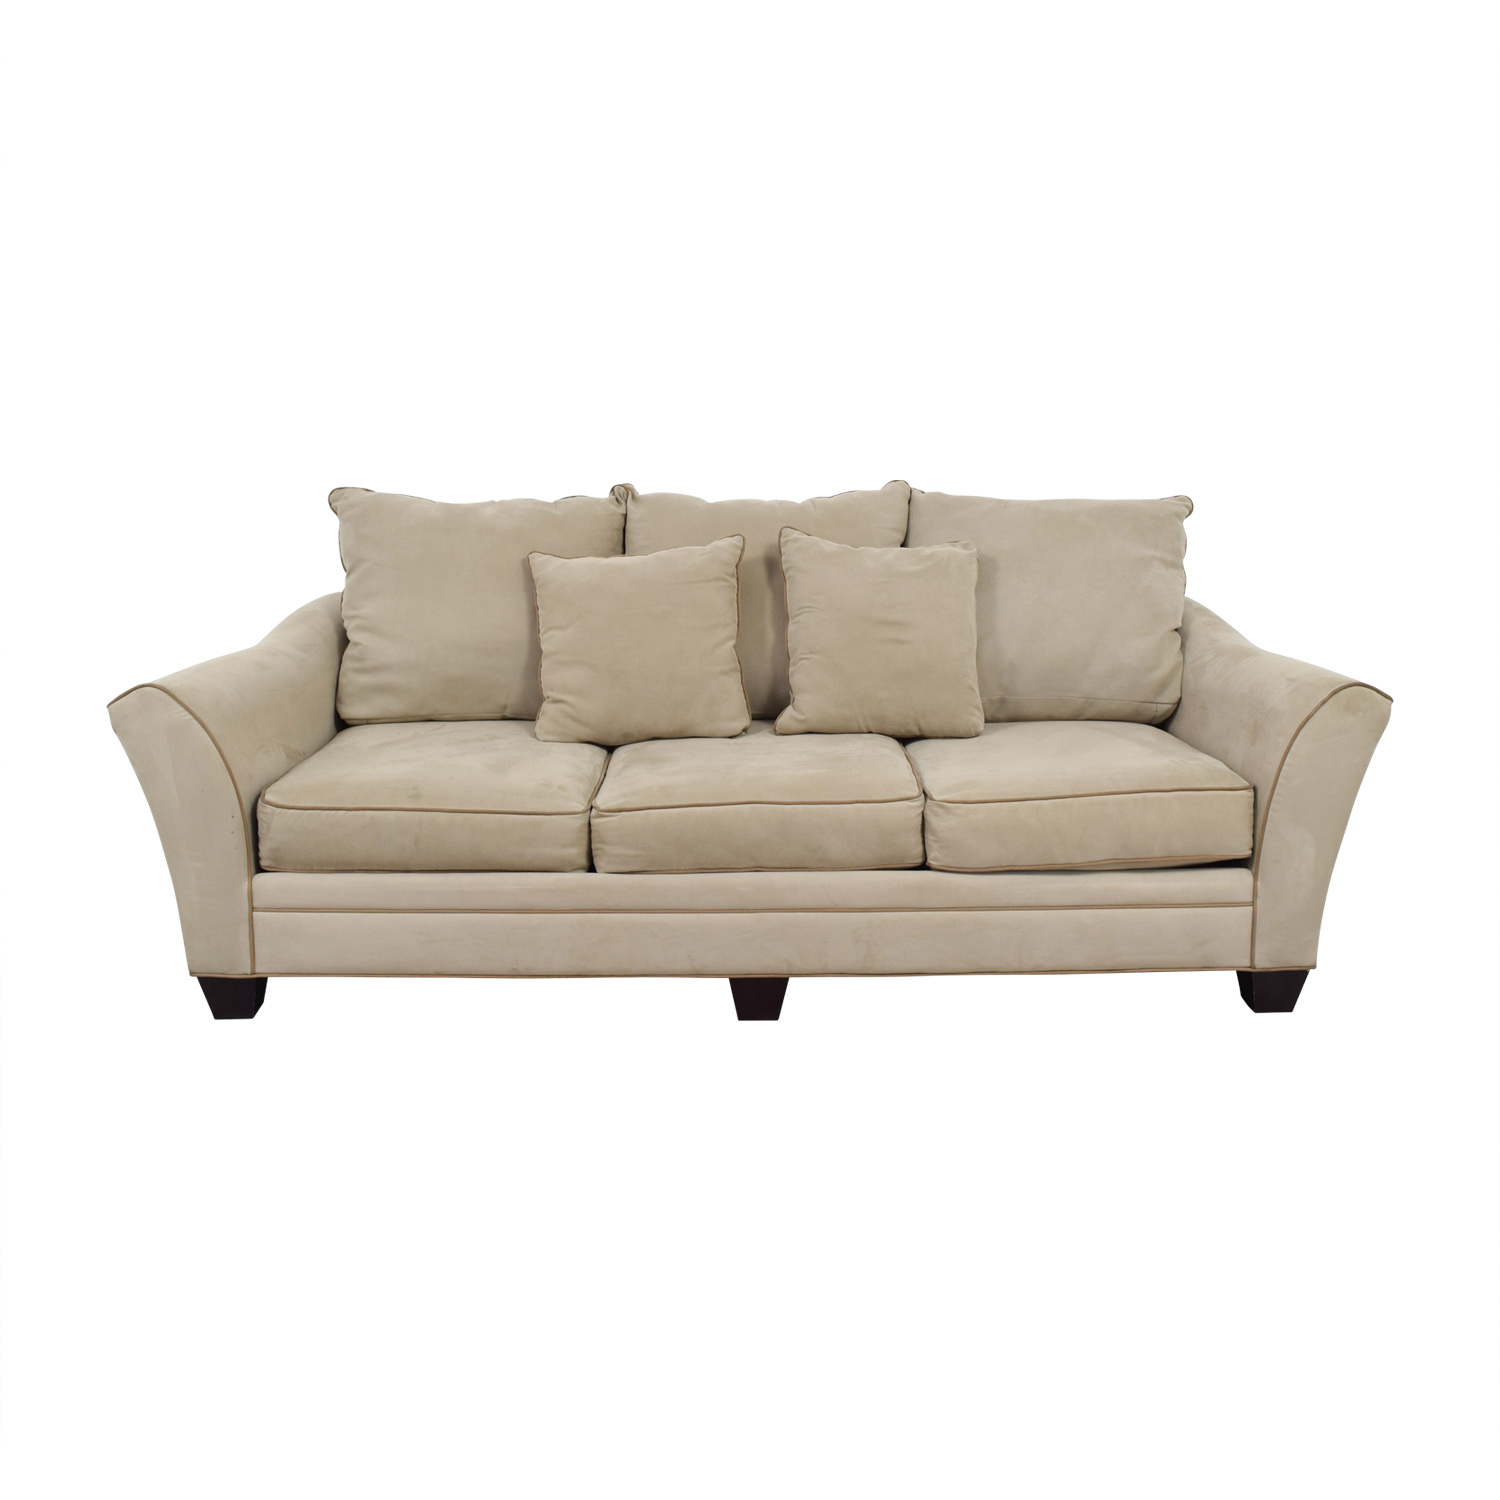 Raymour & Flanigan Raymour & Flanigan Beige Microfiber Three-Cushion Sofa second hand